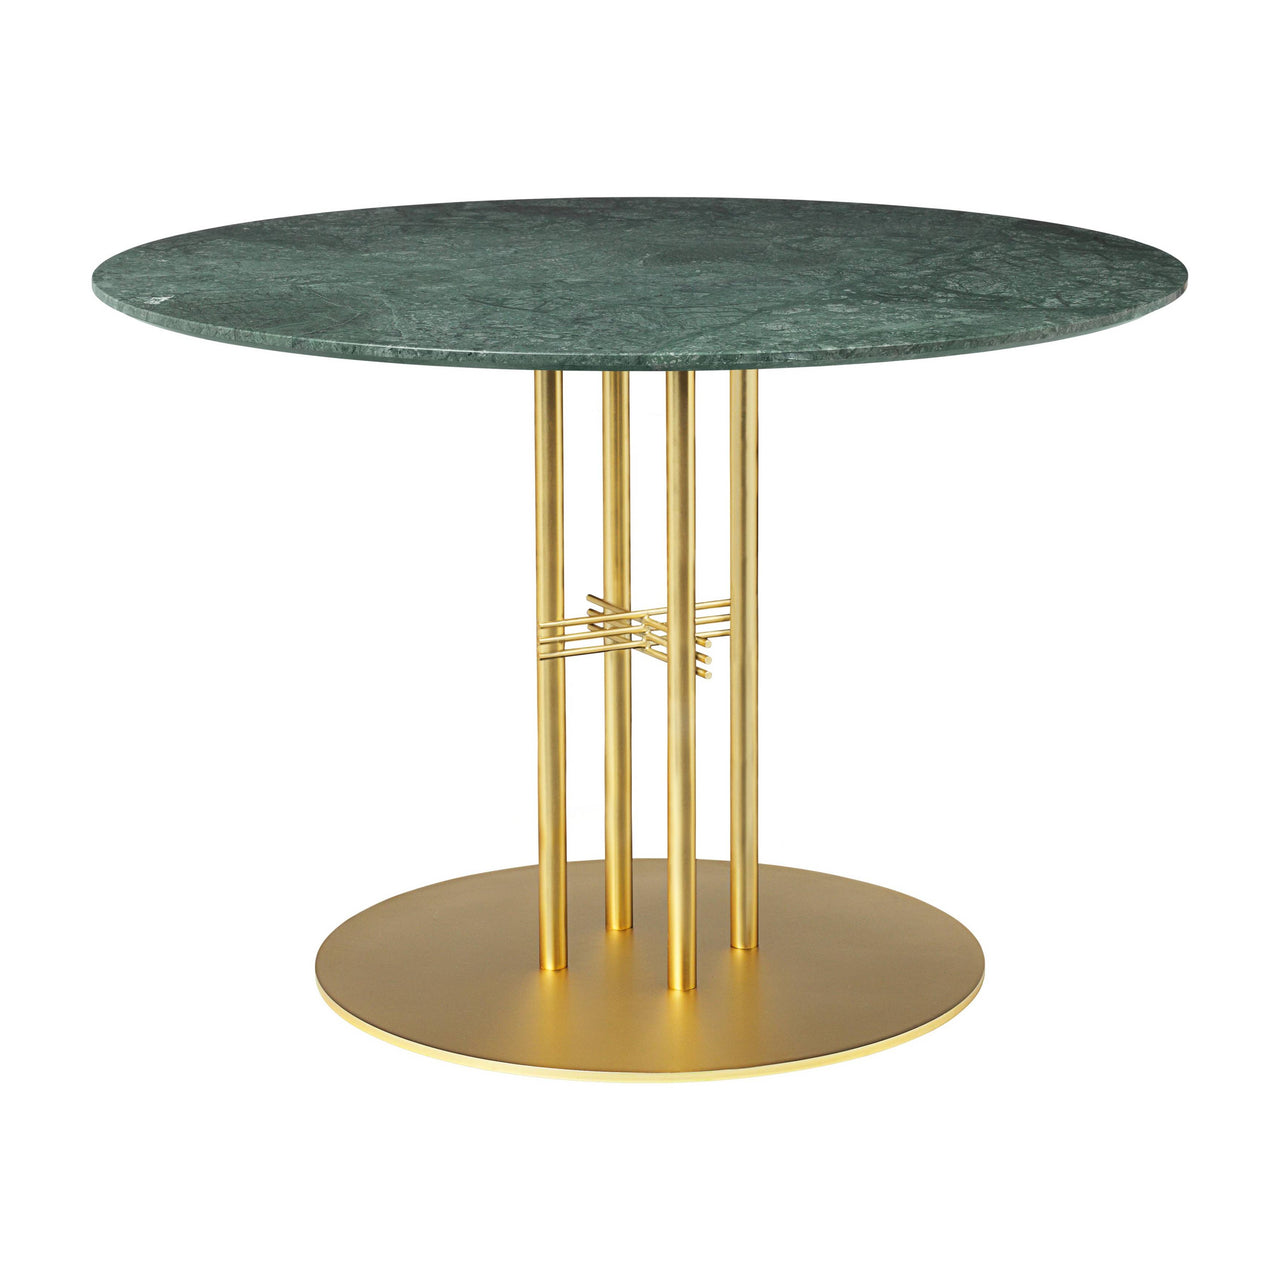 TS Column Dining Table: Medium + Brass Base + Green Gautemala Marble